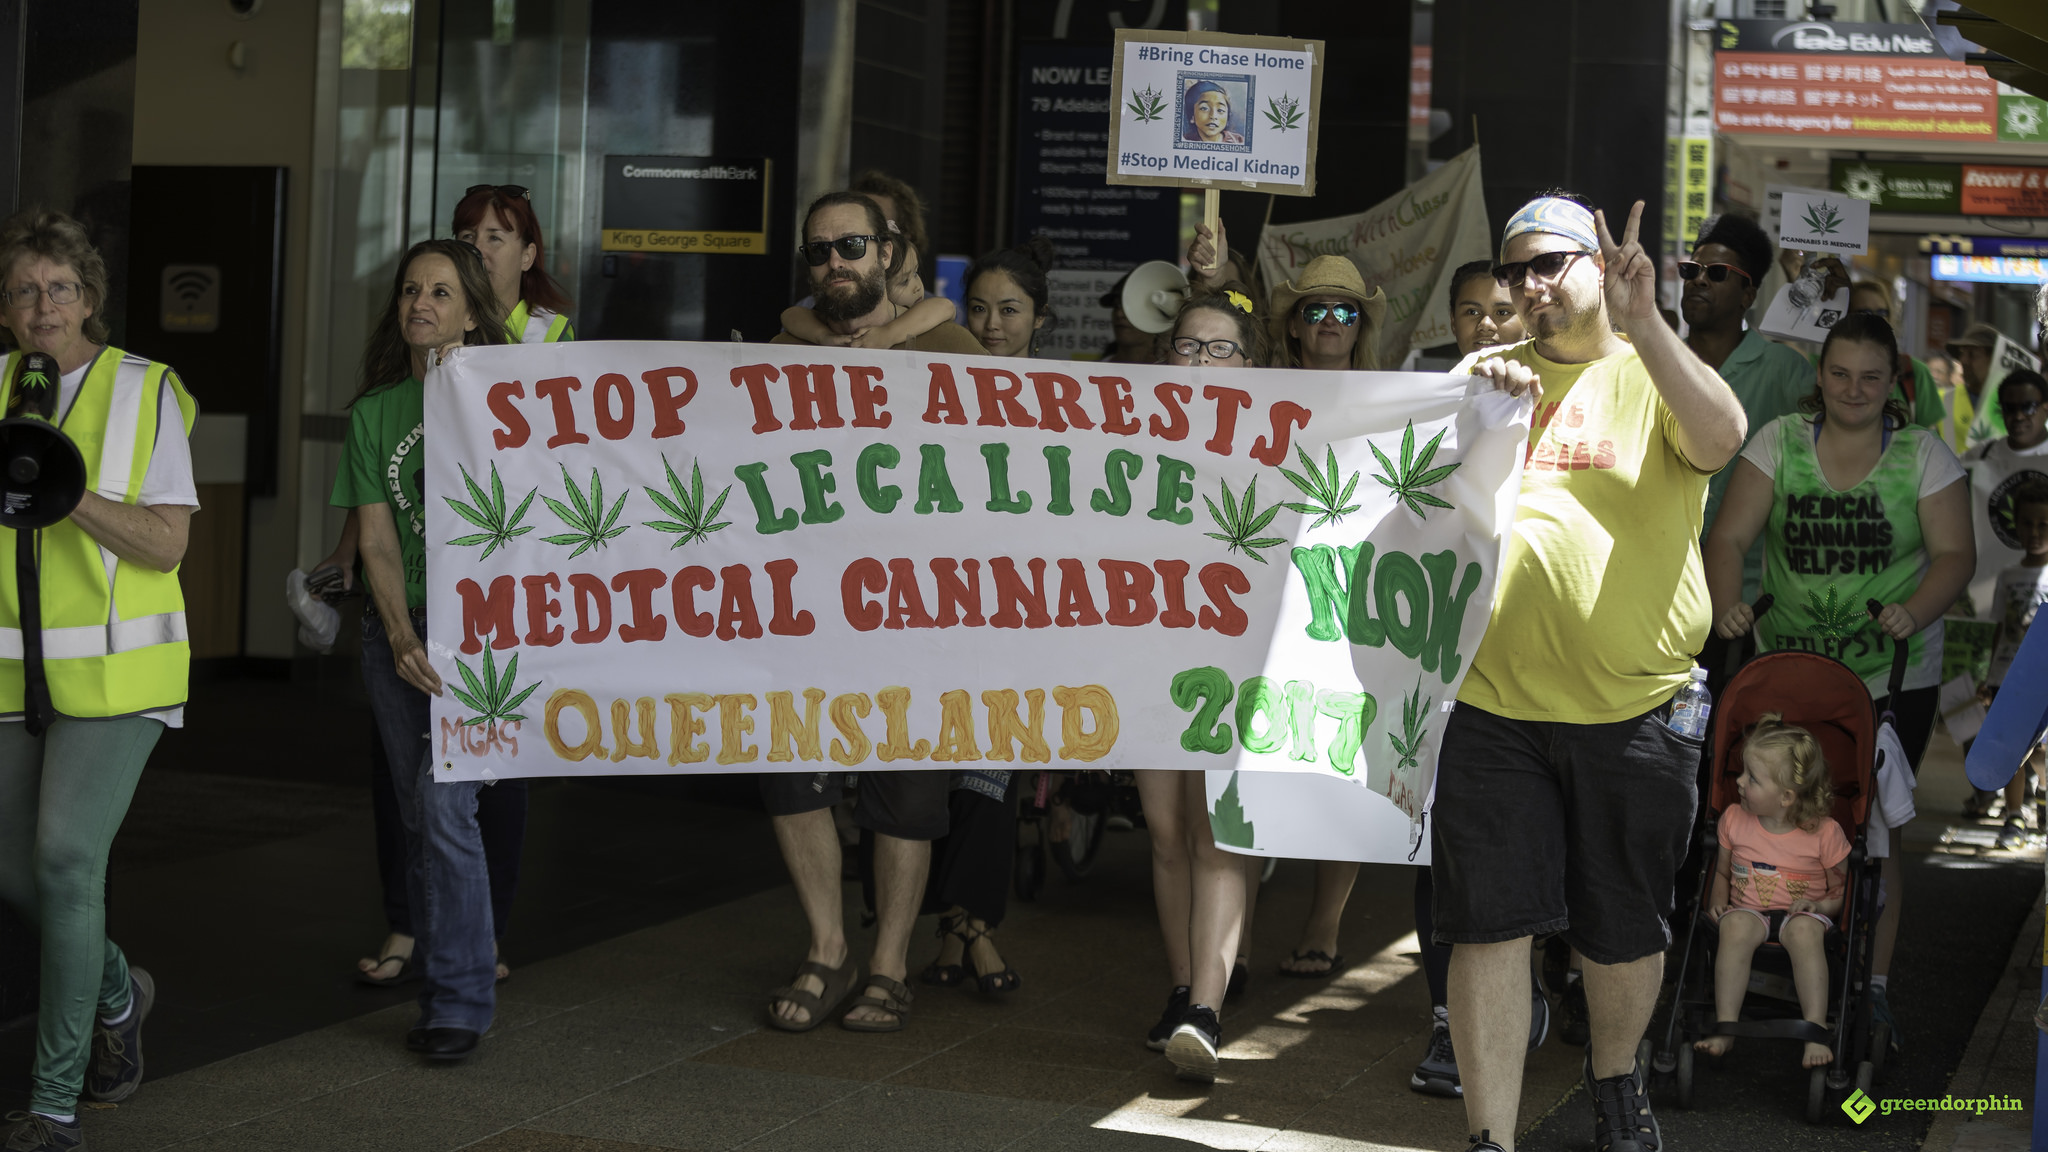 Medical Cannabis Law Reform Rally and March - Brisbane Australia Canada's New Weed Laws